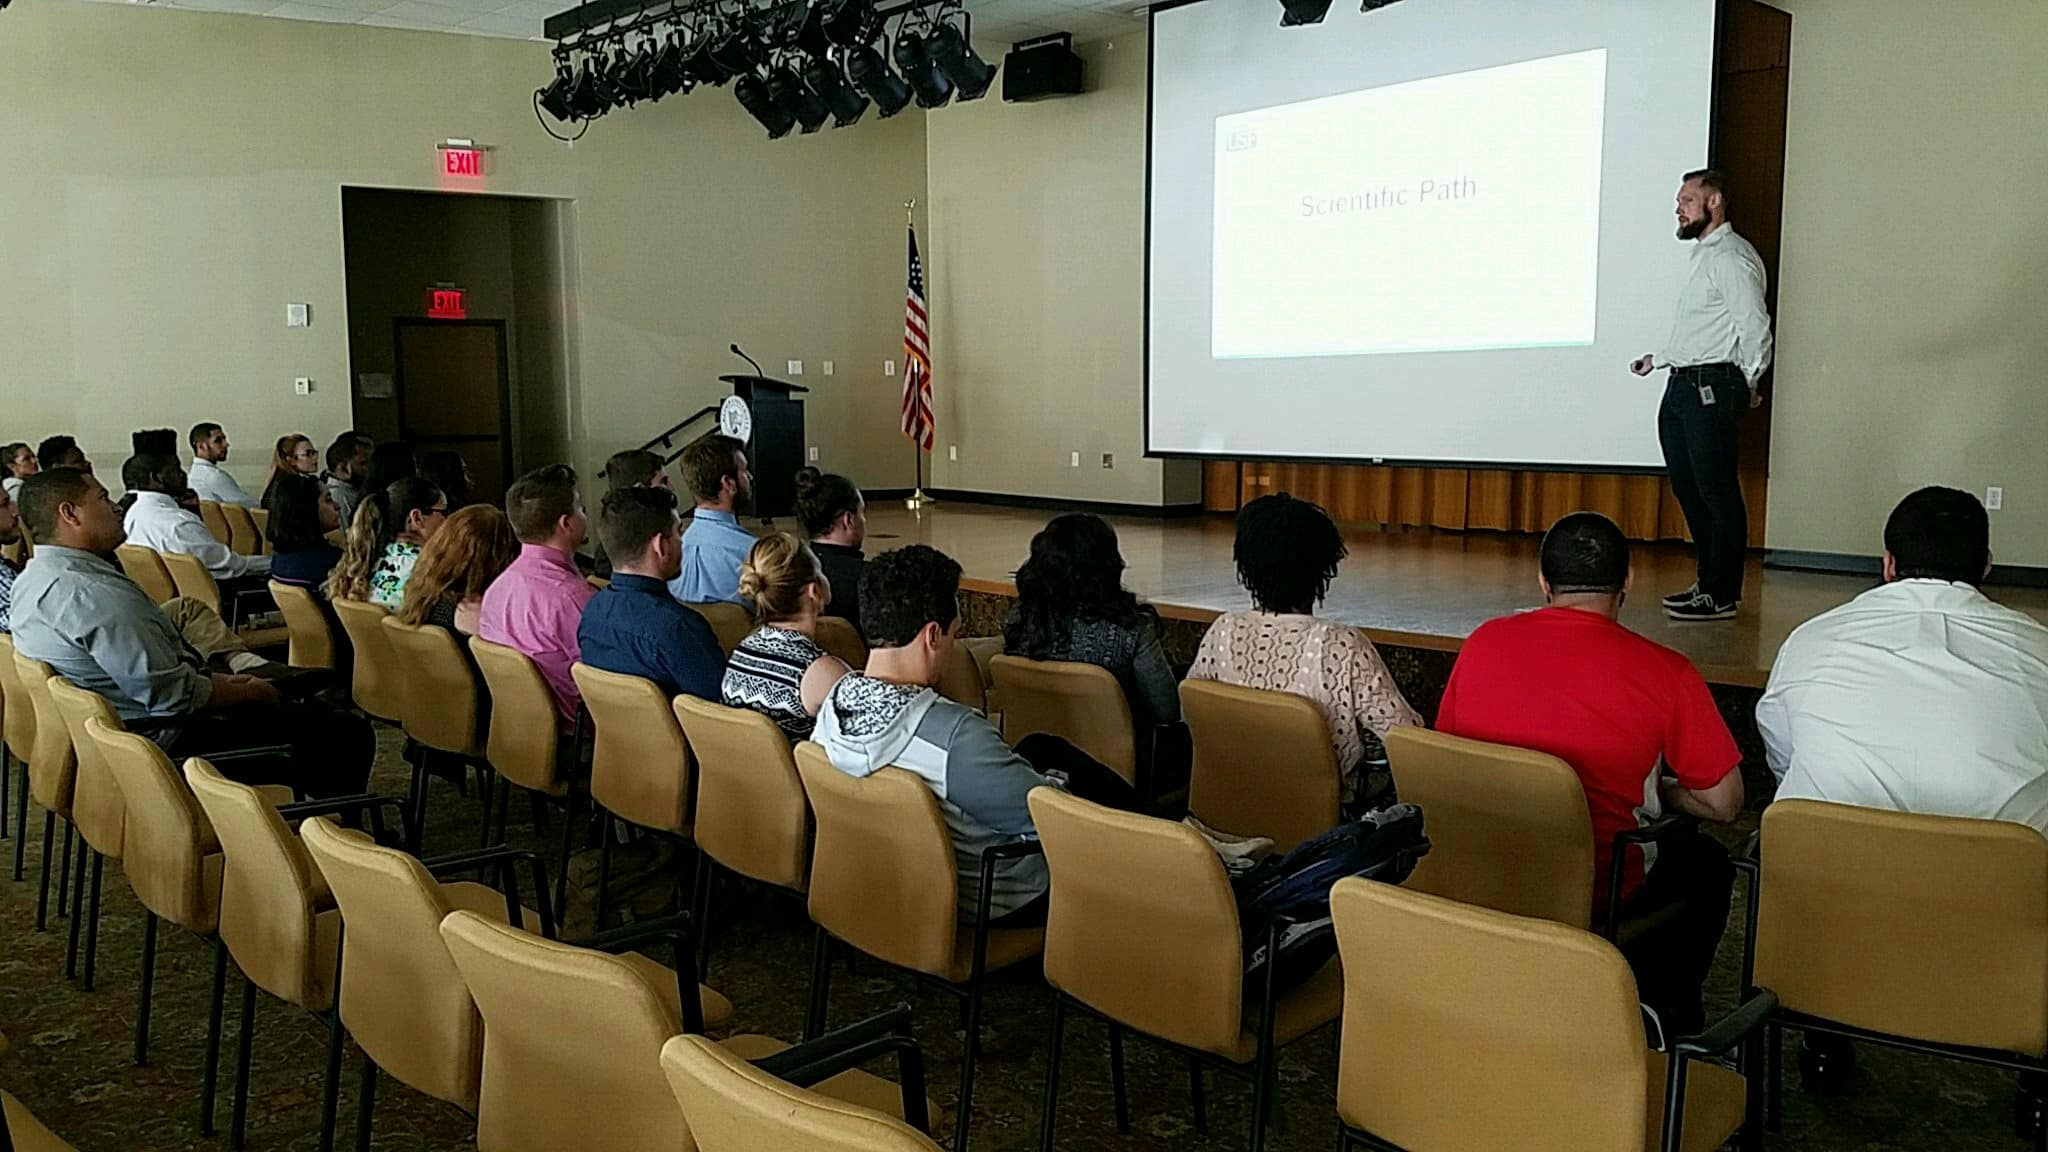 Tampa Students Receive Guest Lecture on Cancer Research